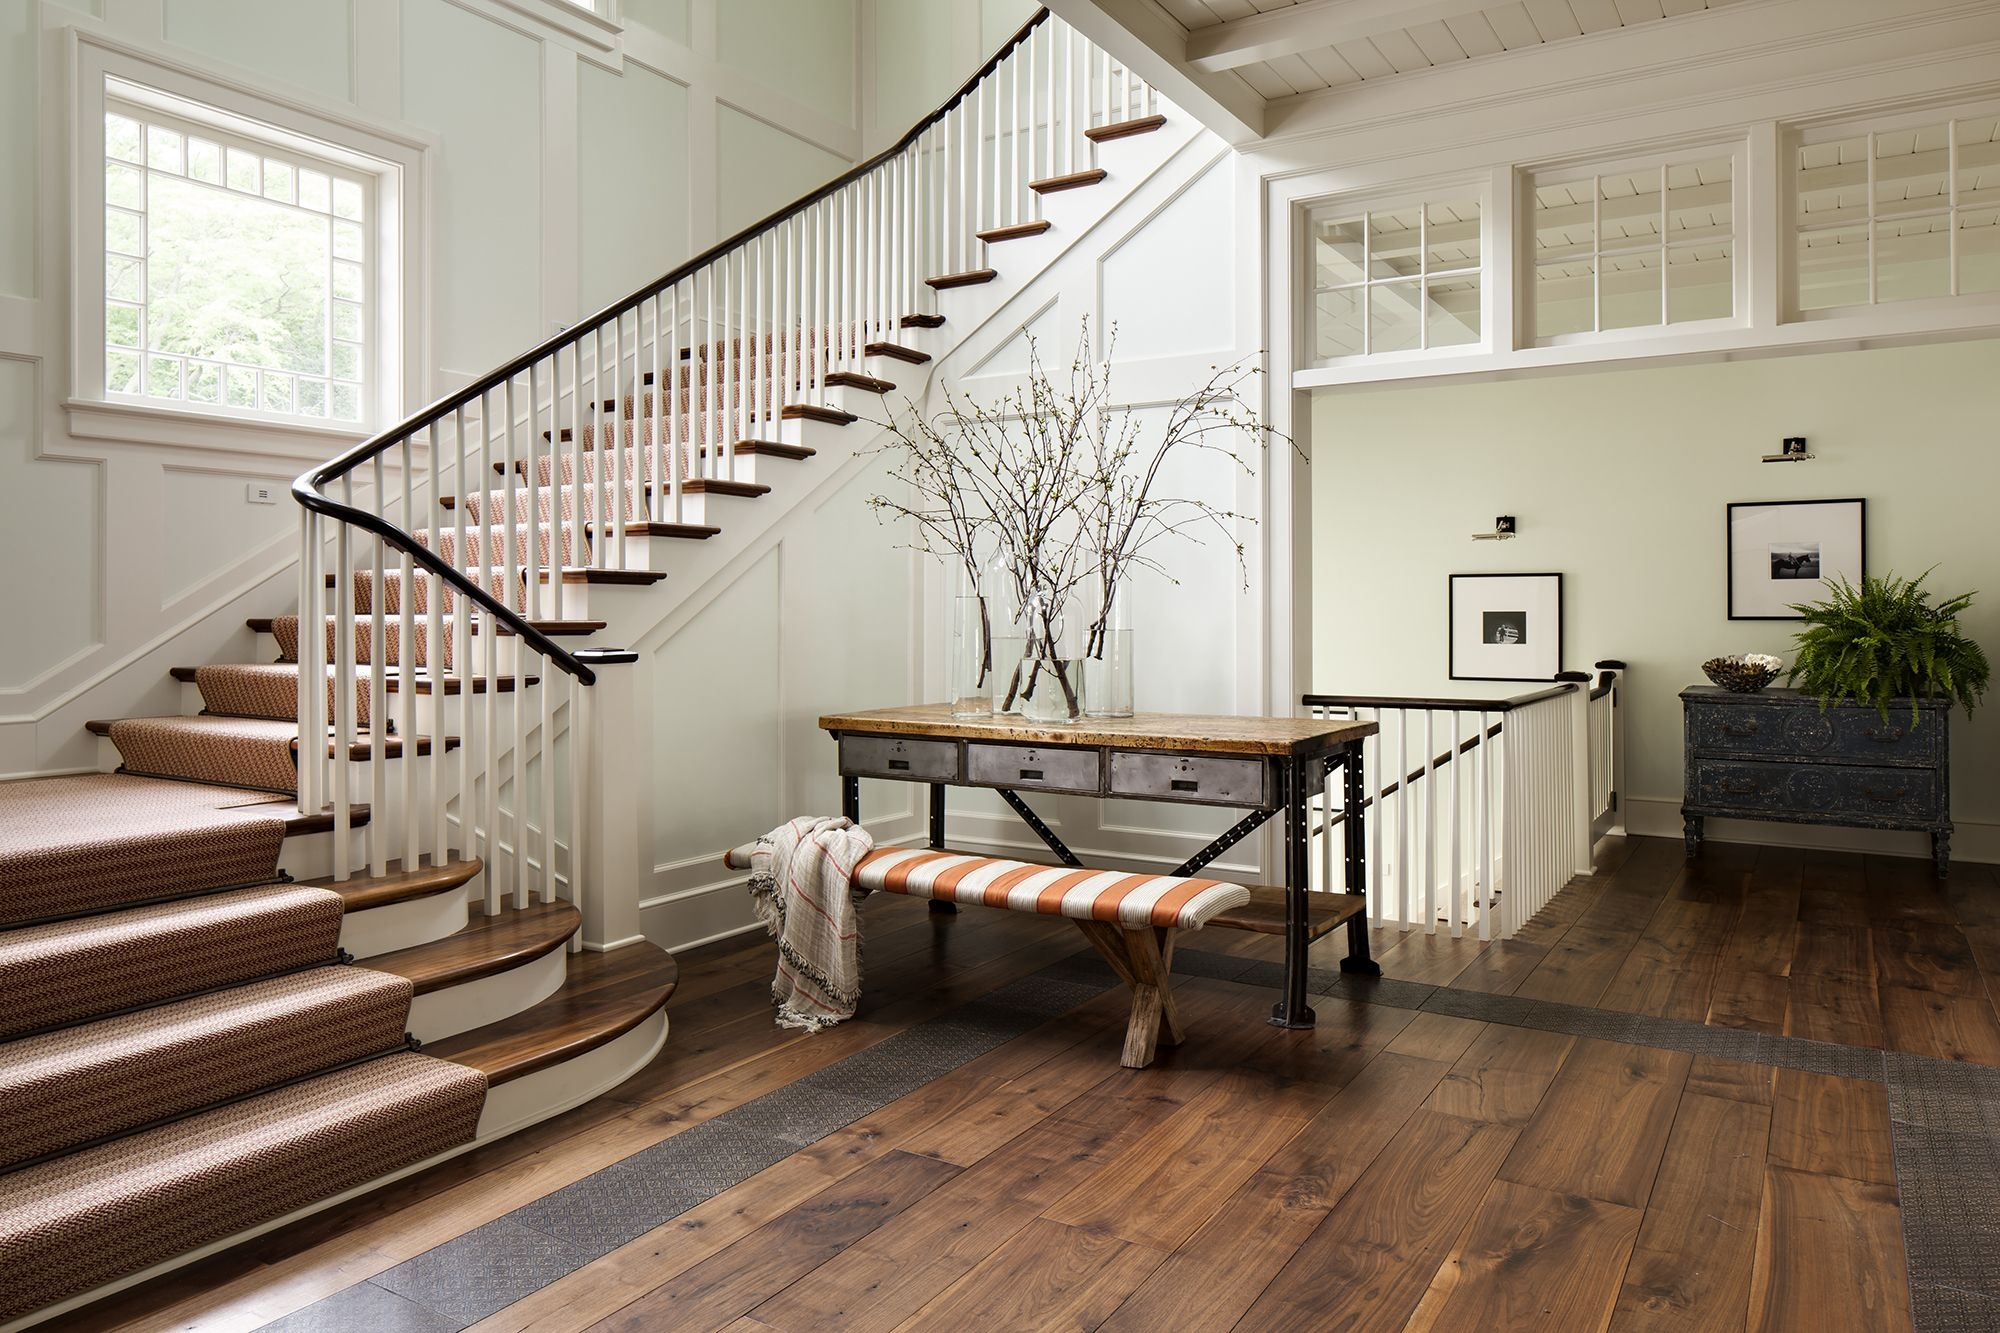 27 Stylish Staircase Decorating Ideas How To Decorate Stairways | Ceiling Design For Stairs Area | Stairwell | Accent Lighting | Cake Shop | Cafeteria | L Shape